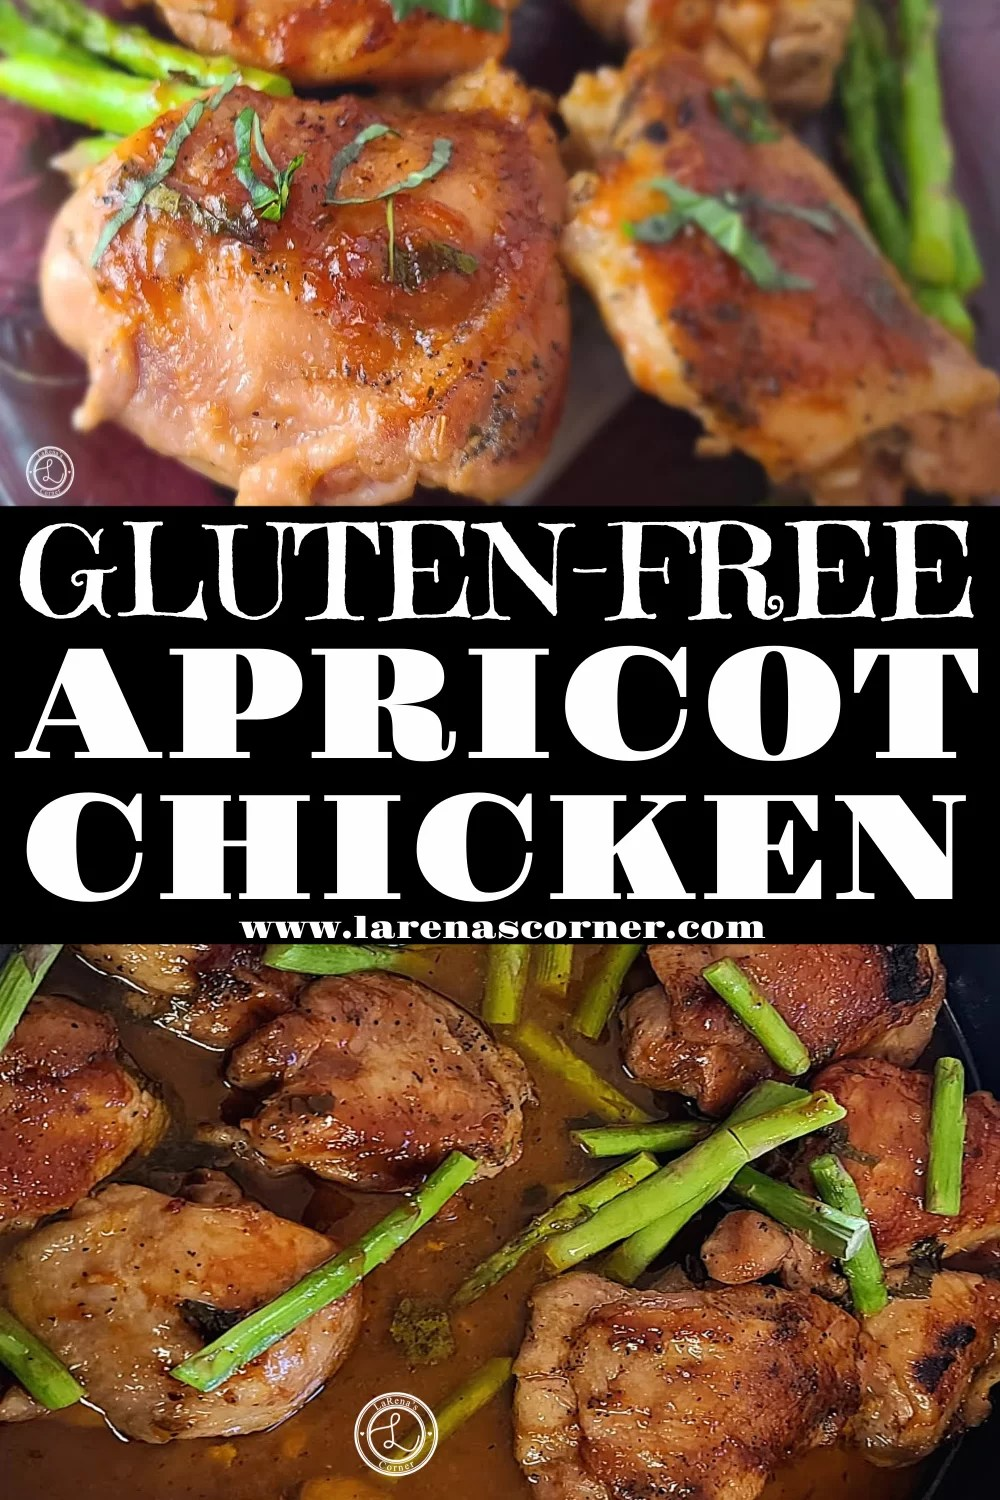 Gluten-Free Apricot Chicken with two pictures